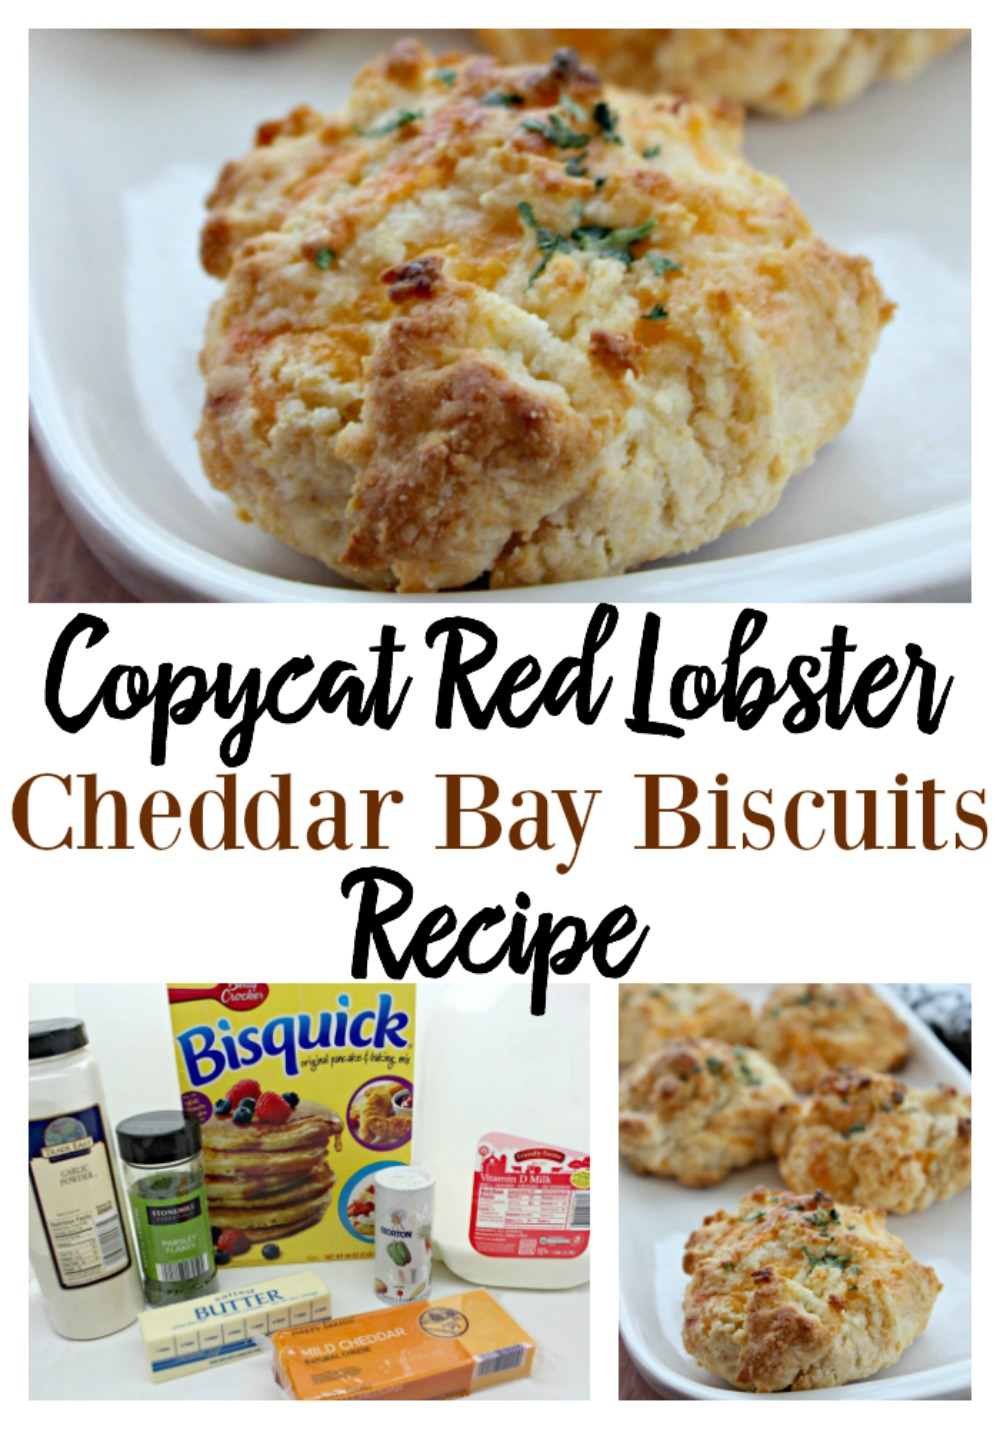 copycat-red-lobster-cheddar-bay-biscuits-recipe